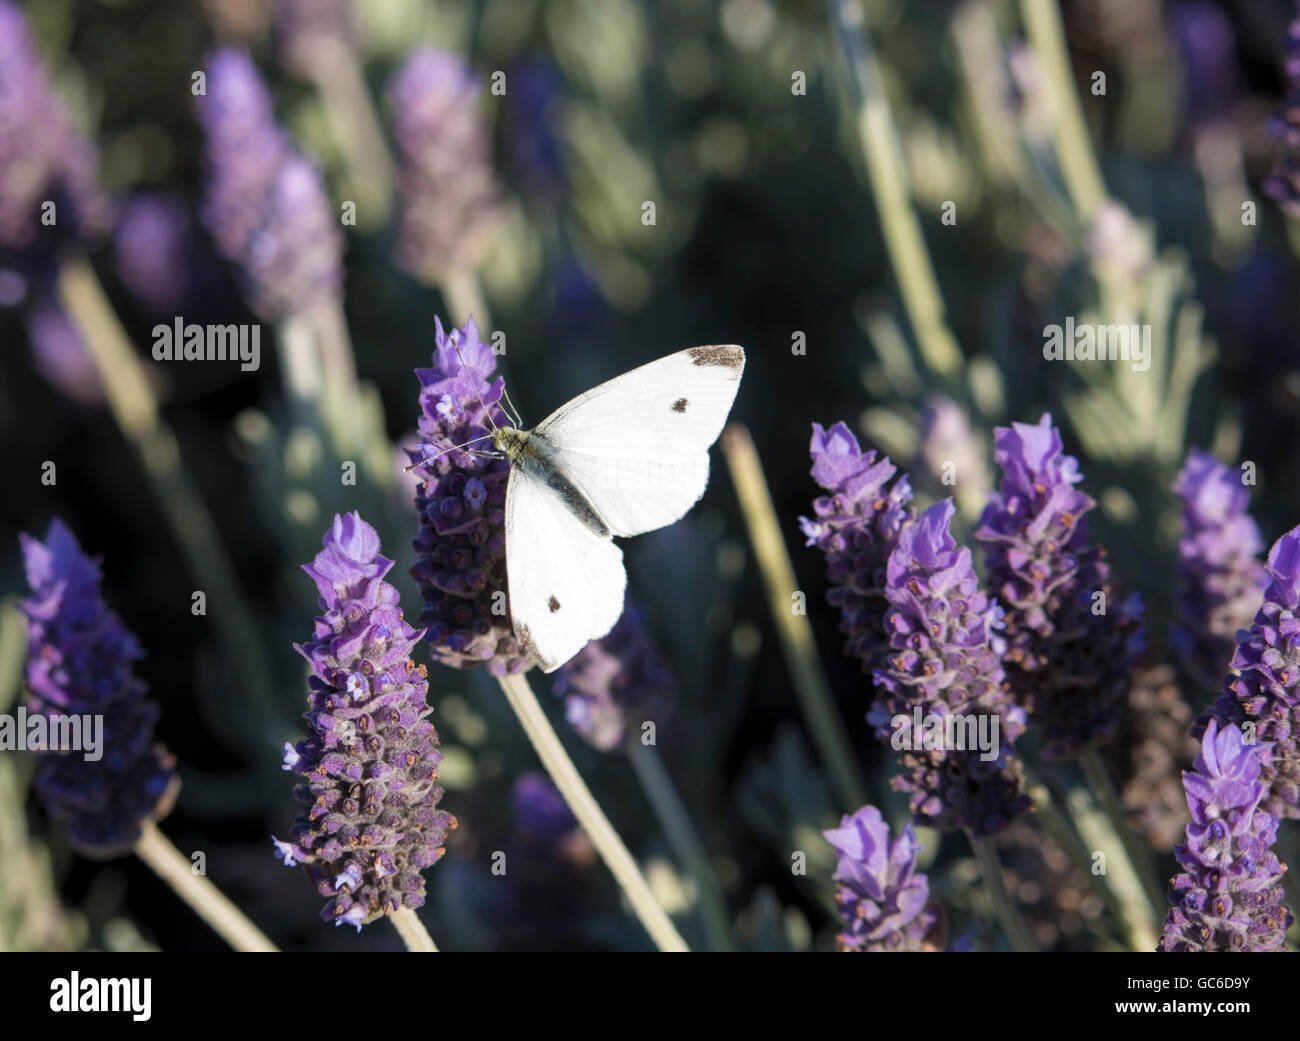 A   pretty white cabbage moth  (Pieris rapae)  gathers pollen from  fragrant purple  lavender  spiked flowers in - Stock Image